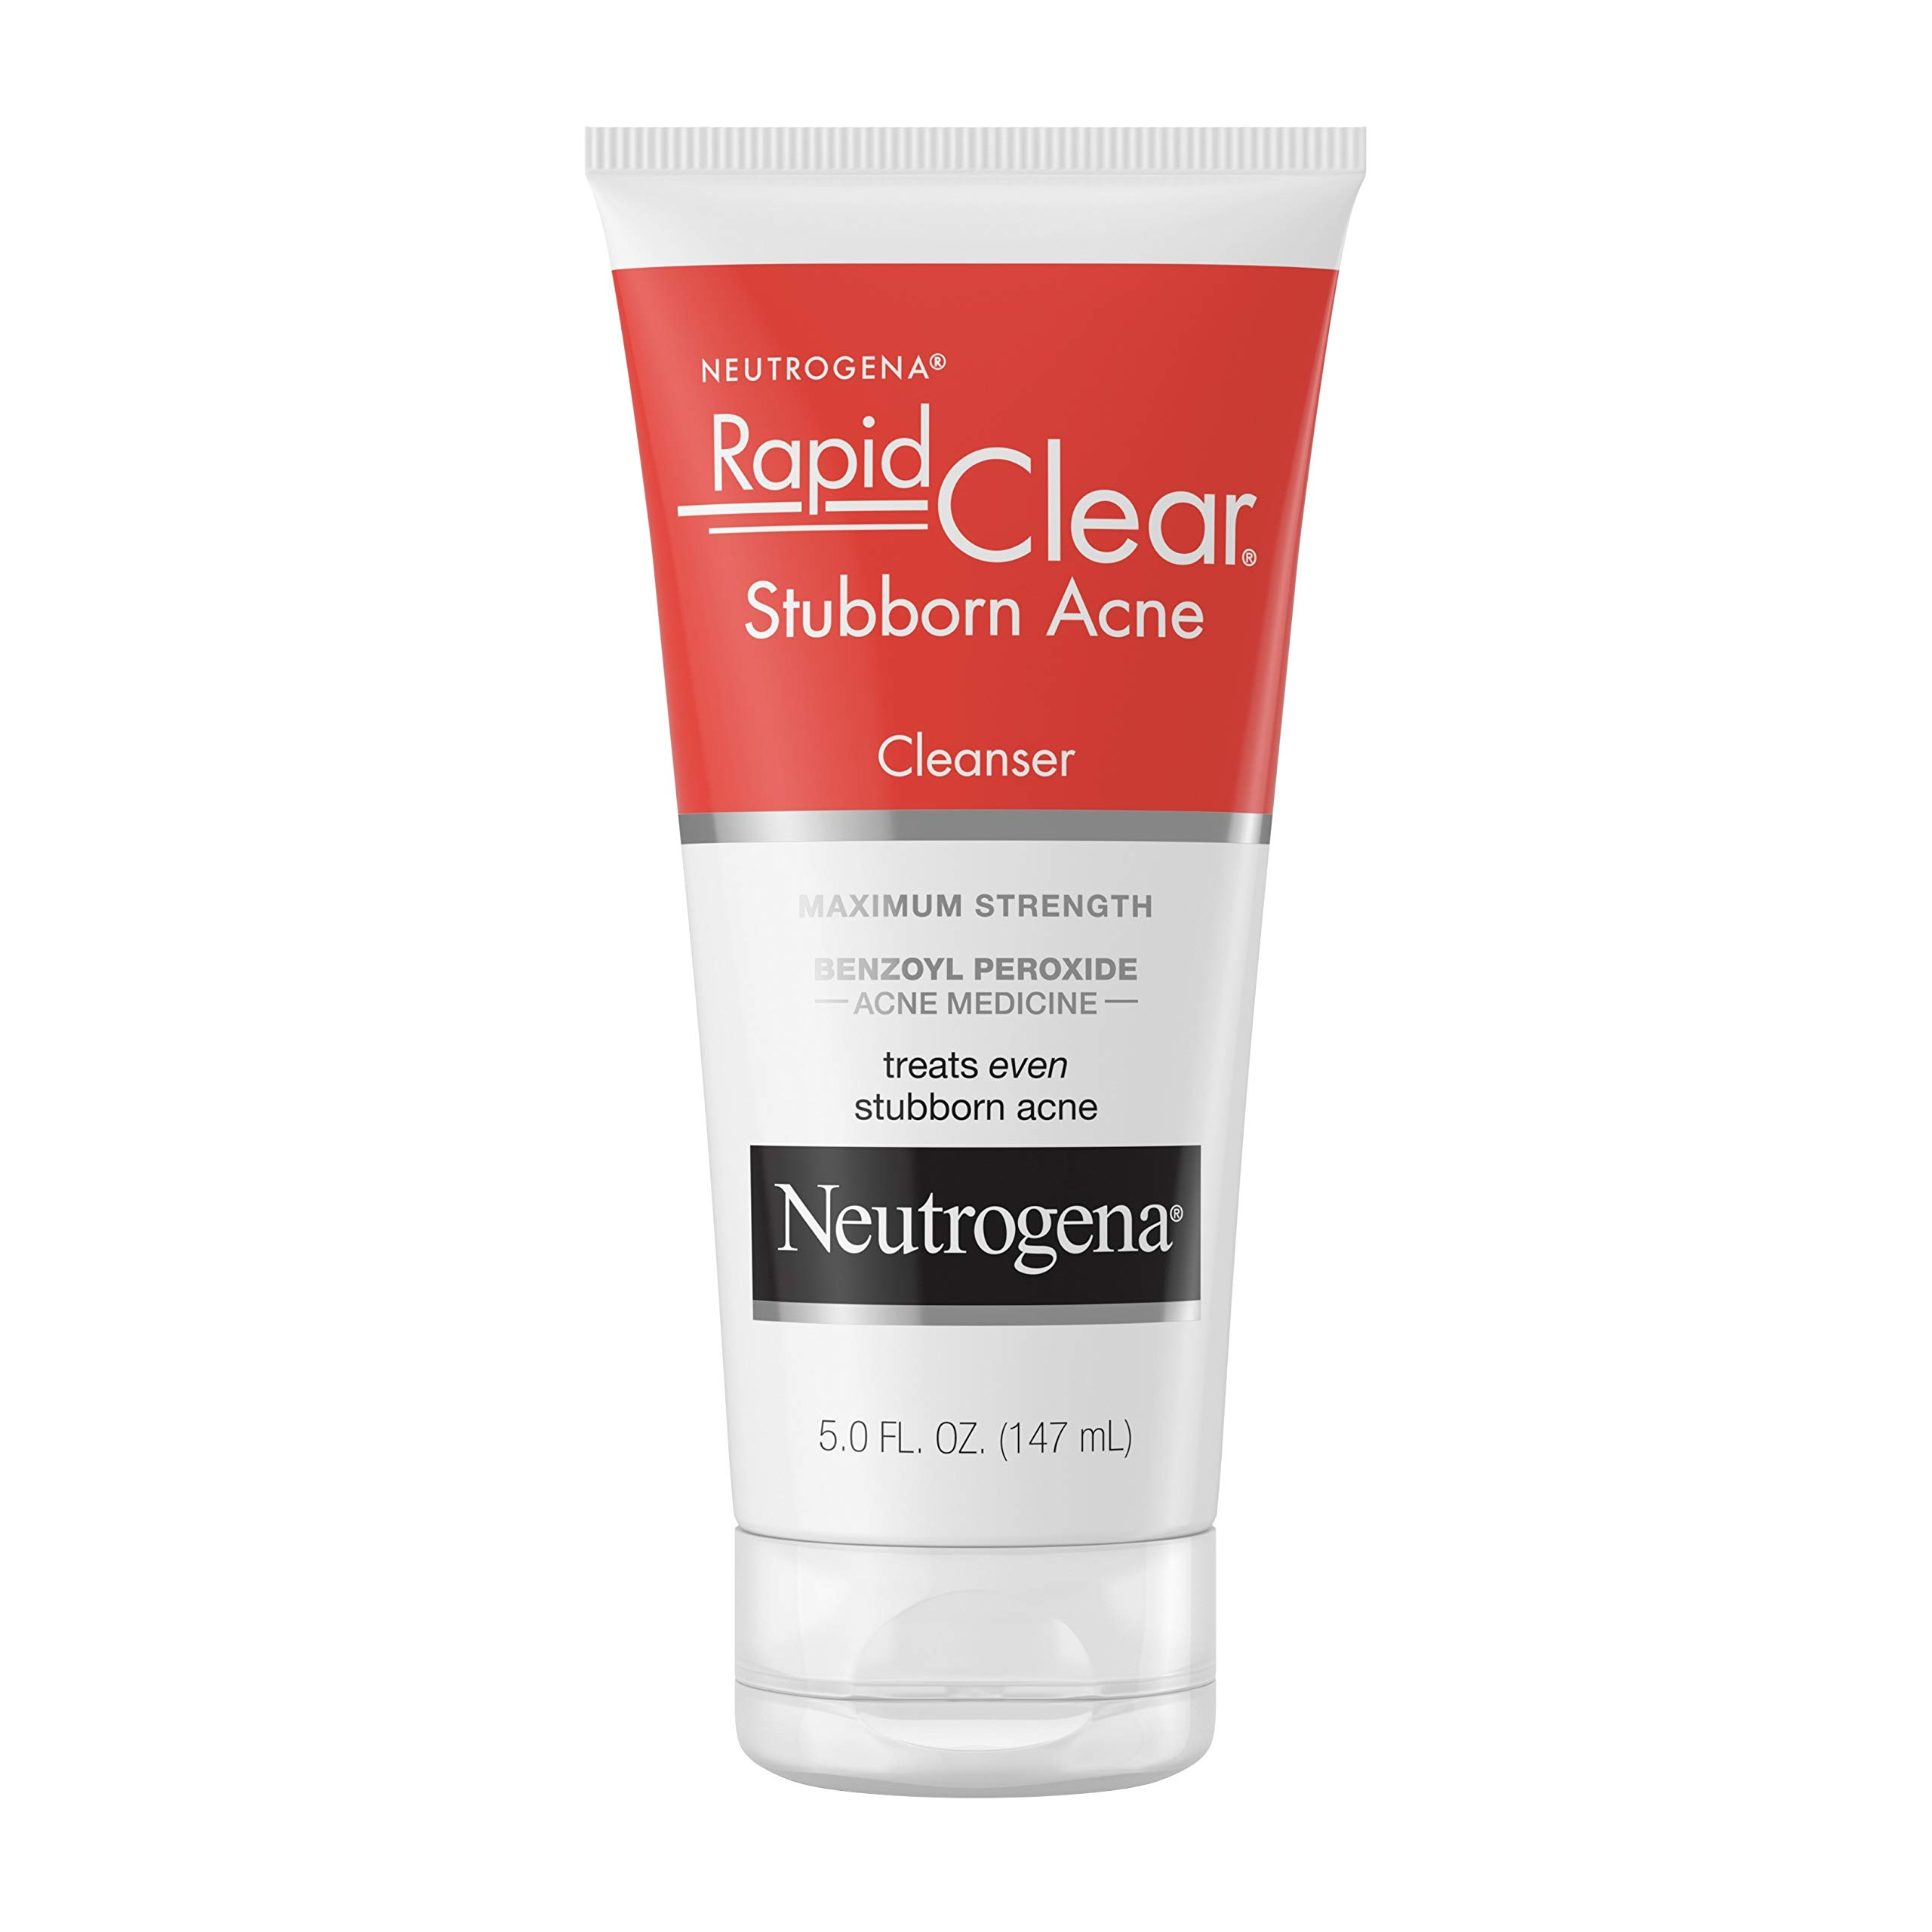 Neutrogena Rapid Clear Stubborn Acne Face Wash with 10 percent Benzoyl Peroxide Acne Treatment Medicine, Daily Facial Cleanser to Reduce Size and Redness of Acne, Benzoyl Peroxide, 5 fl. oz